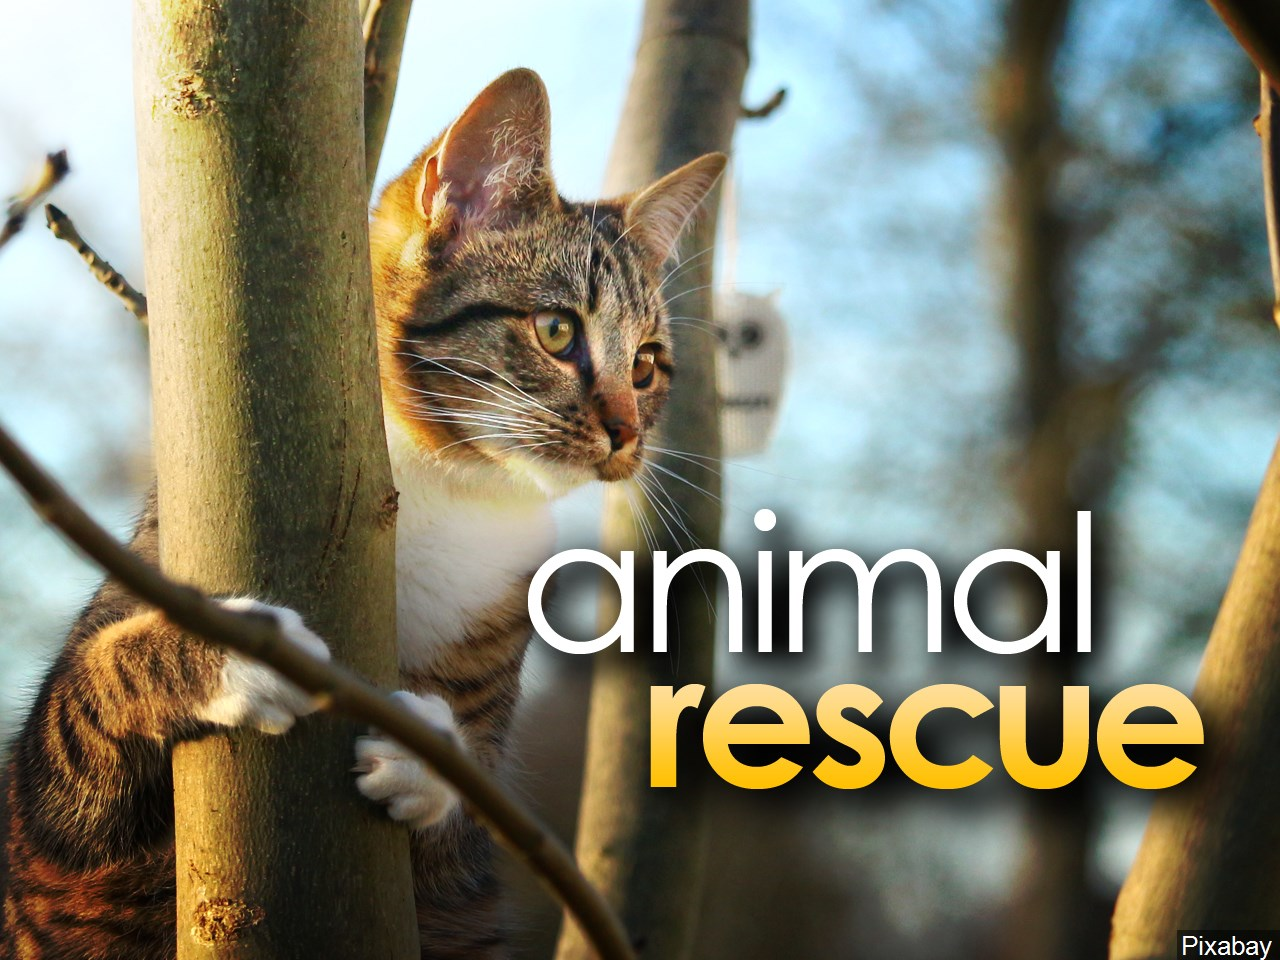 CNY animal shelter working to take care of 100 cats rescued